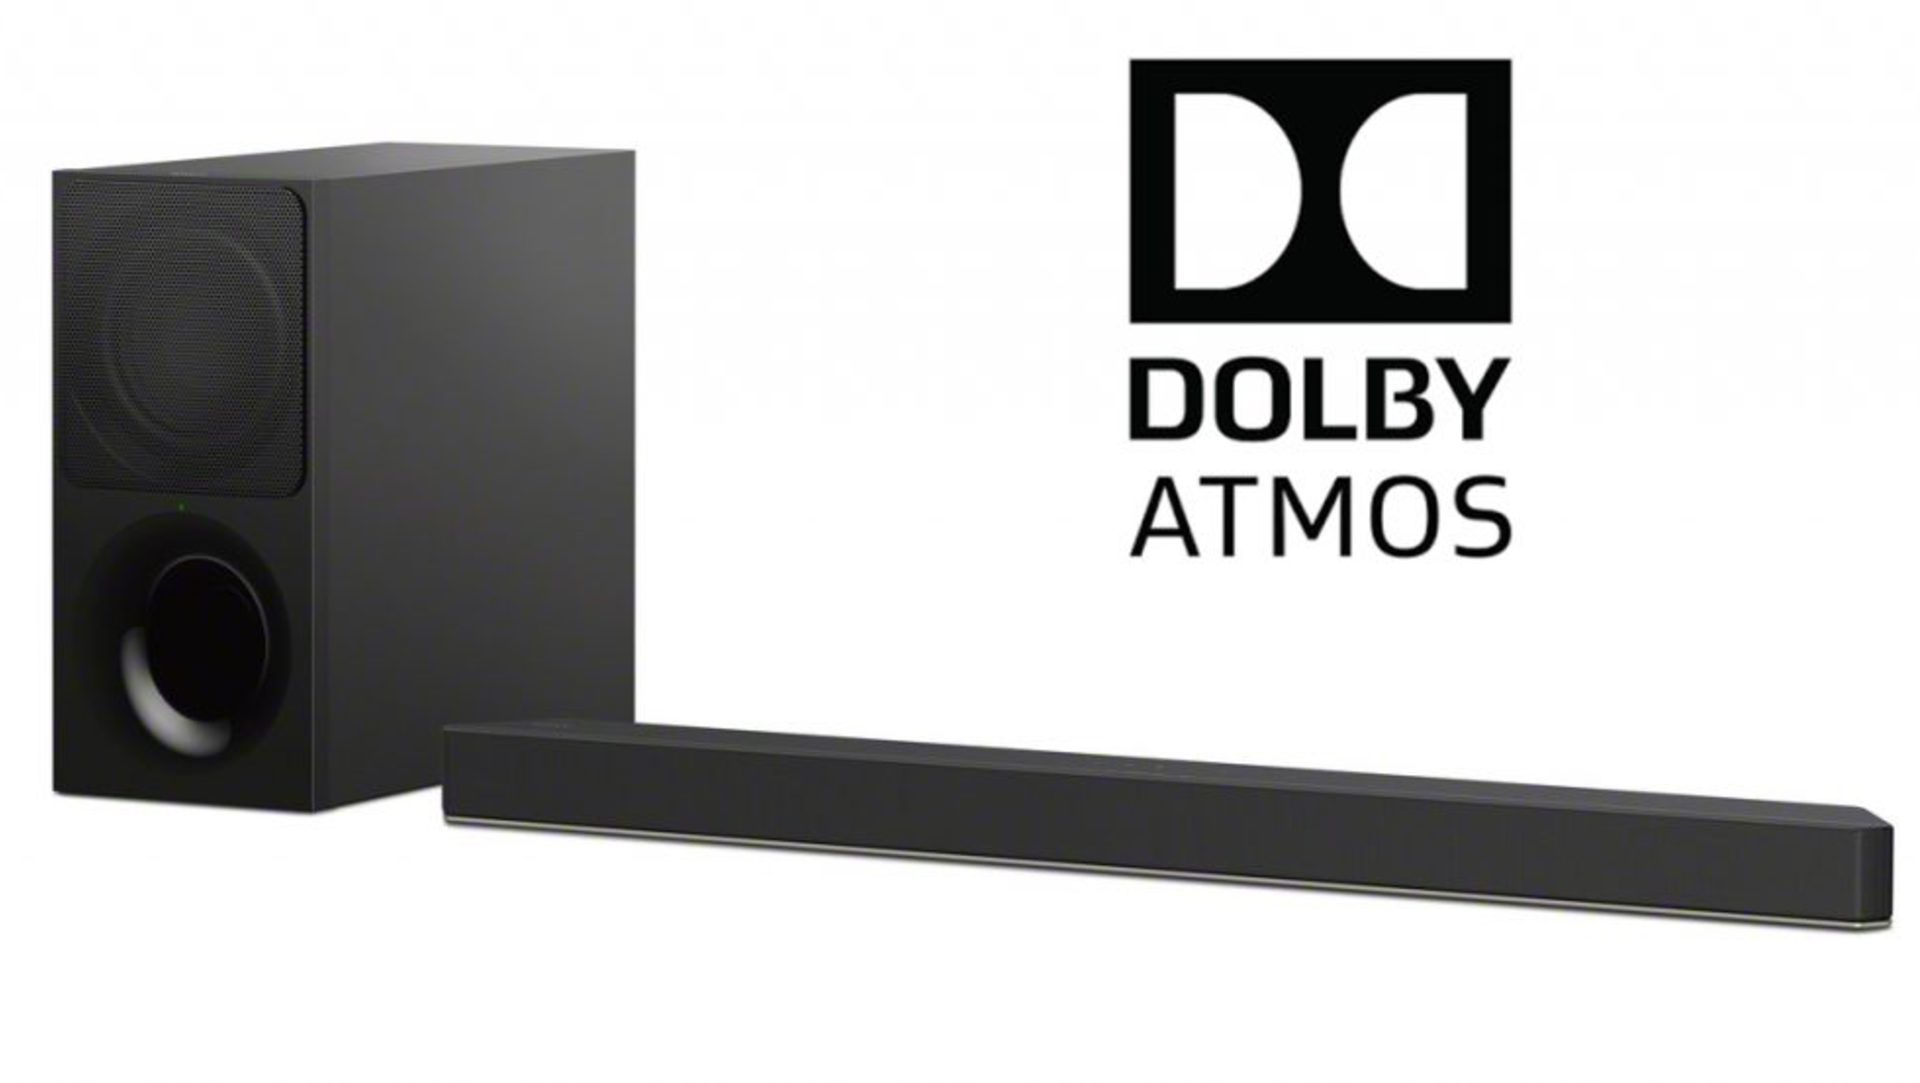 Sony Announces Ground Breaking HT-Z9F and HT-X9000F Sound Bars